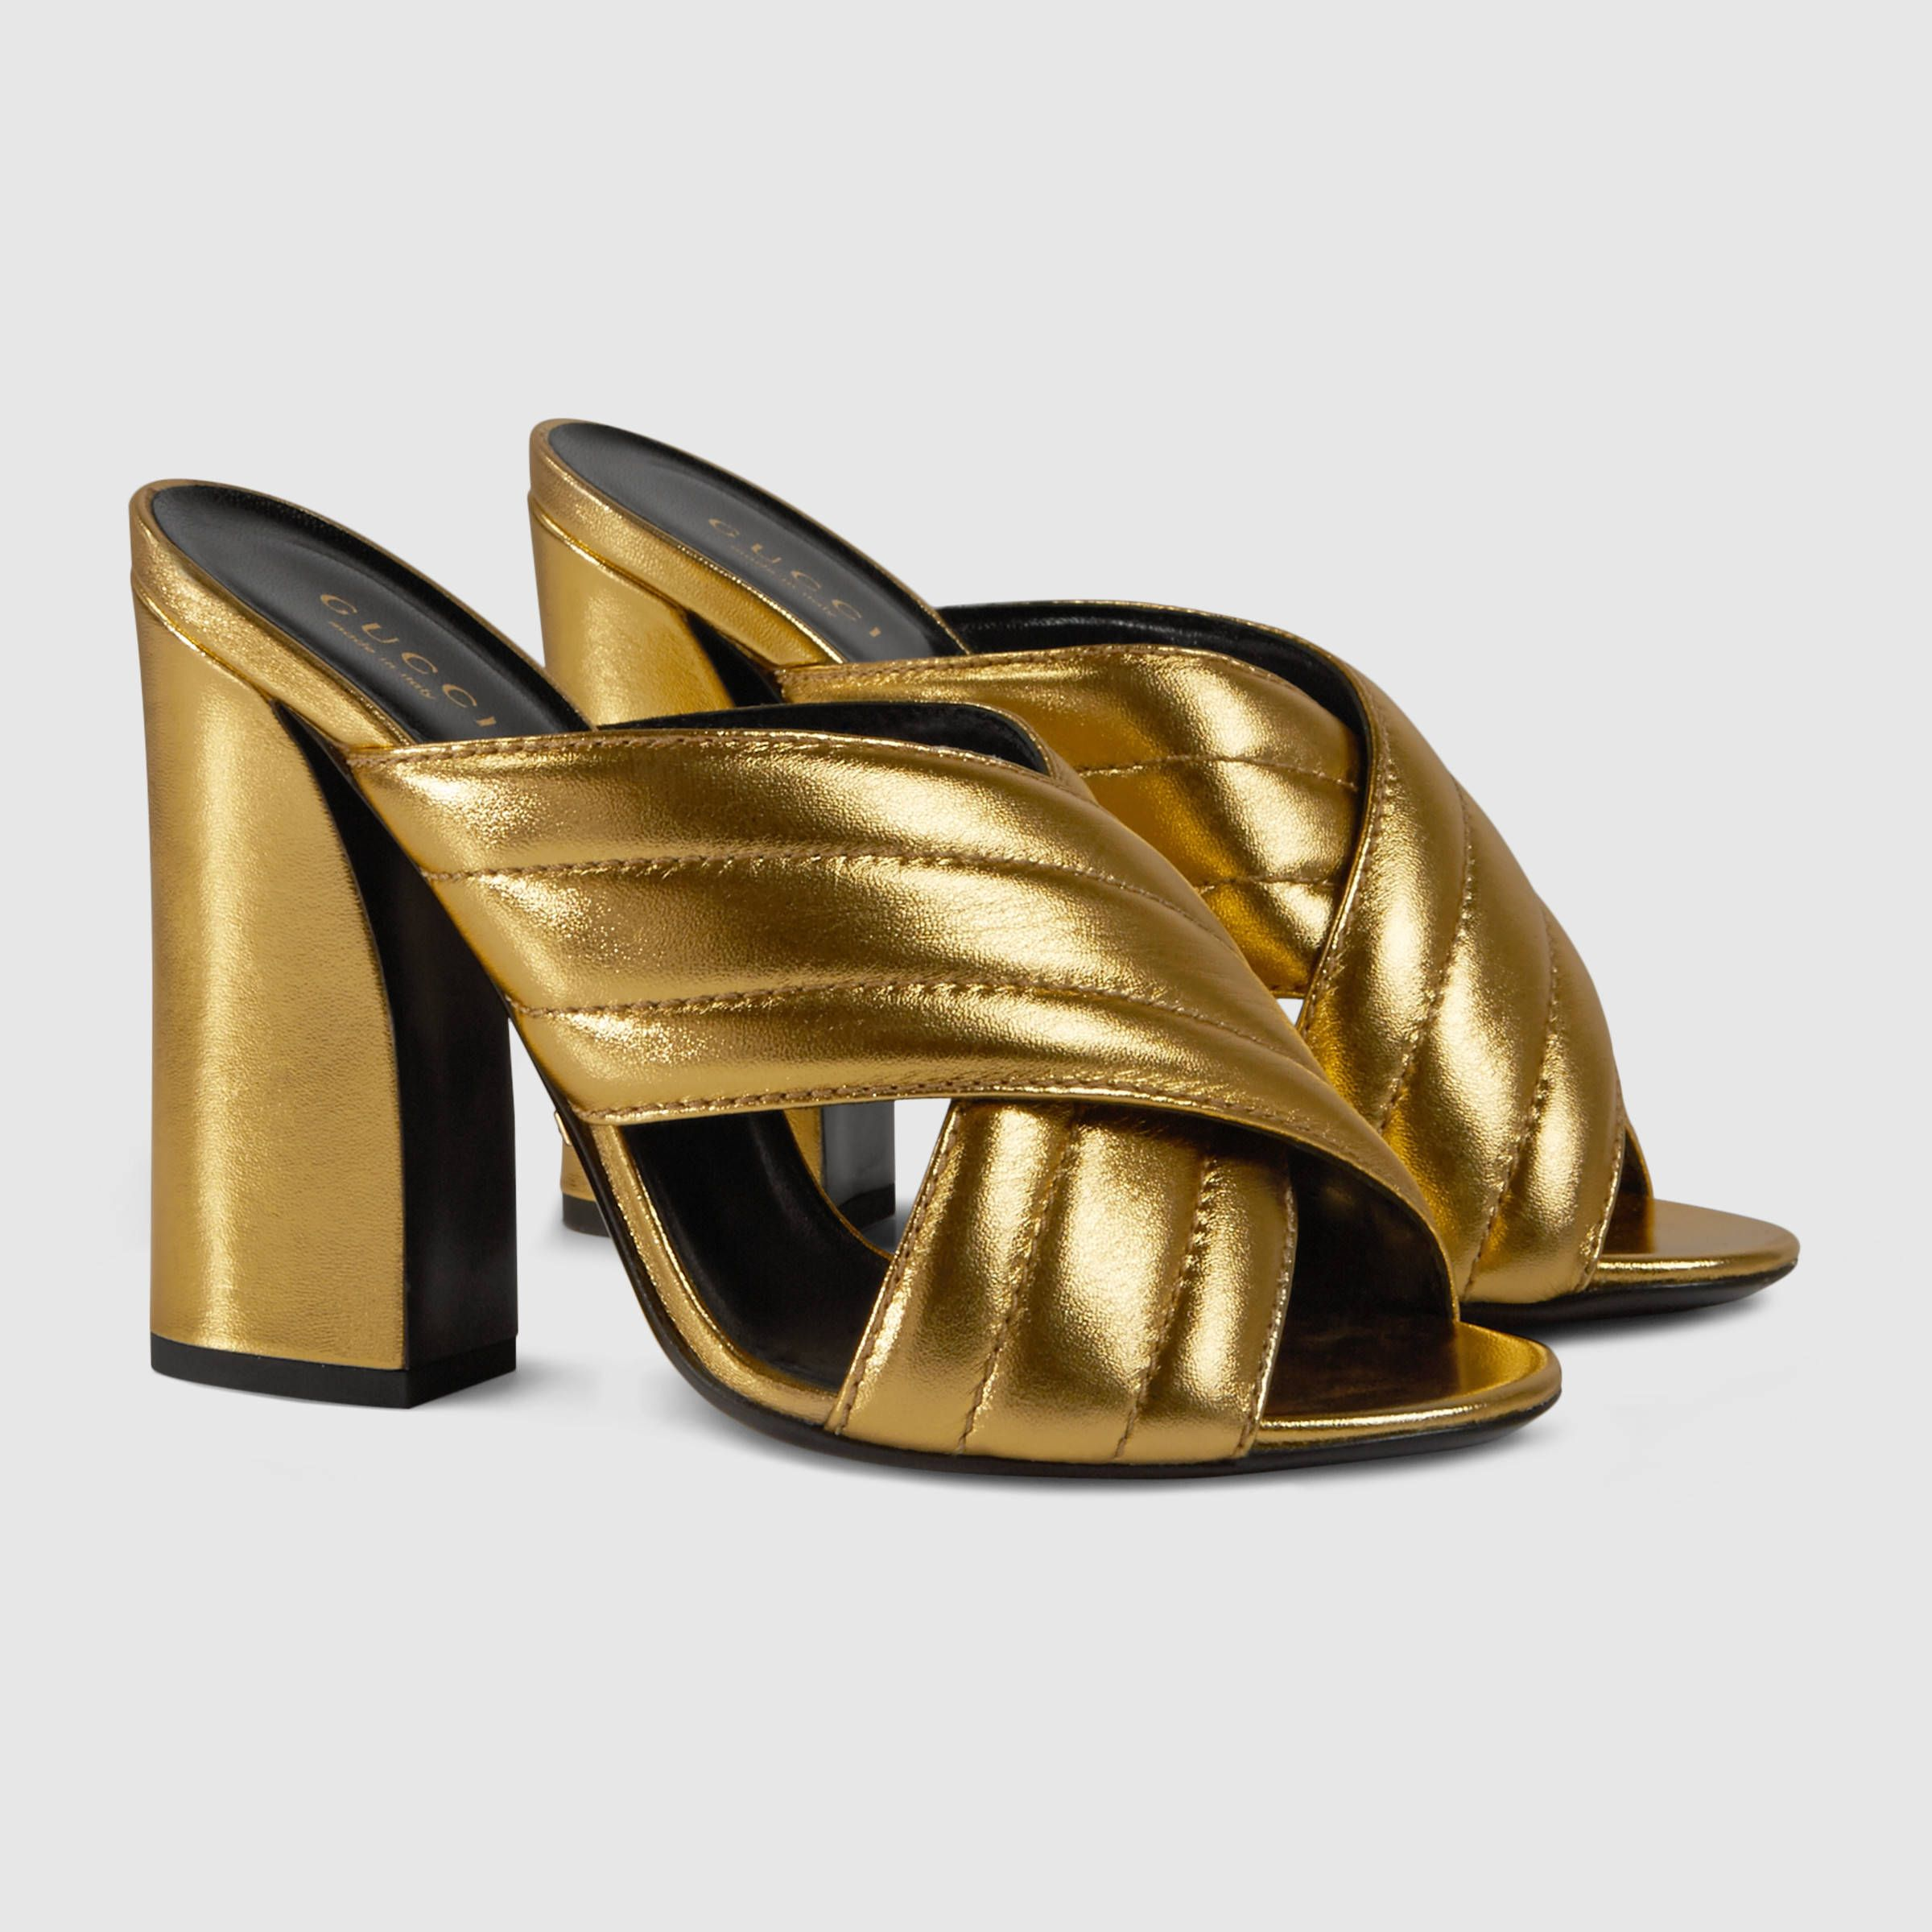 cb8449237744 Gucci Women - Gucci Metallic Gold crossover sandal -  595.00 ...